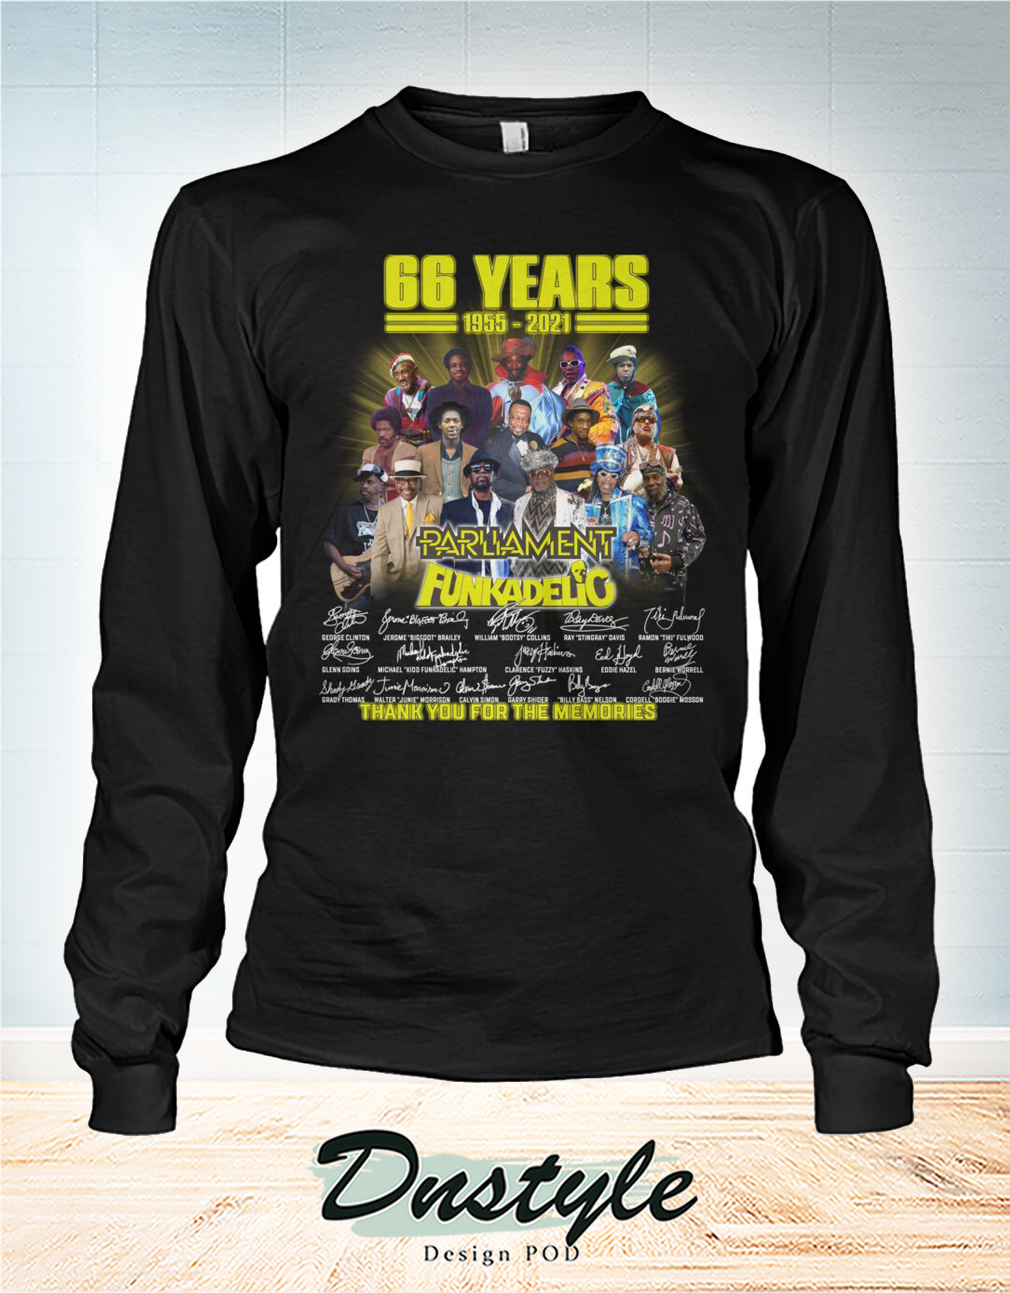 66 years parliament funkadelic thank you for the memories long sleeve